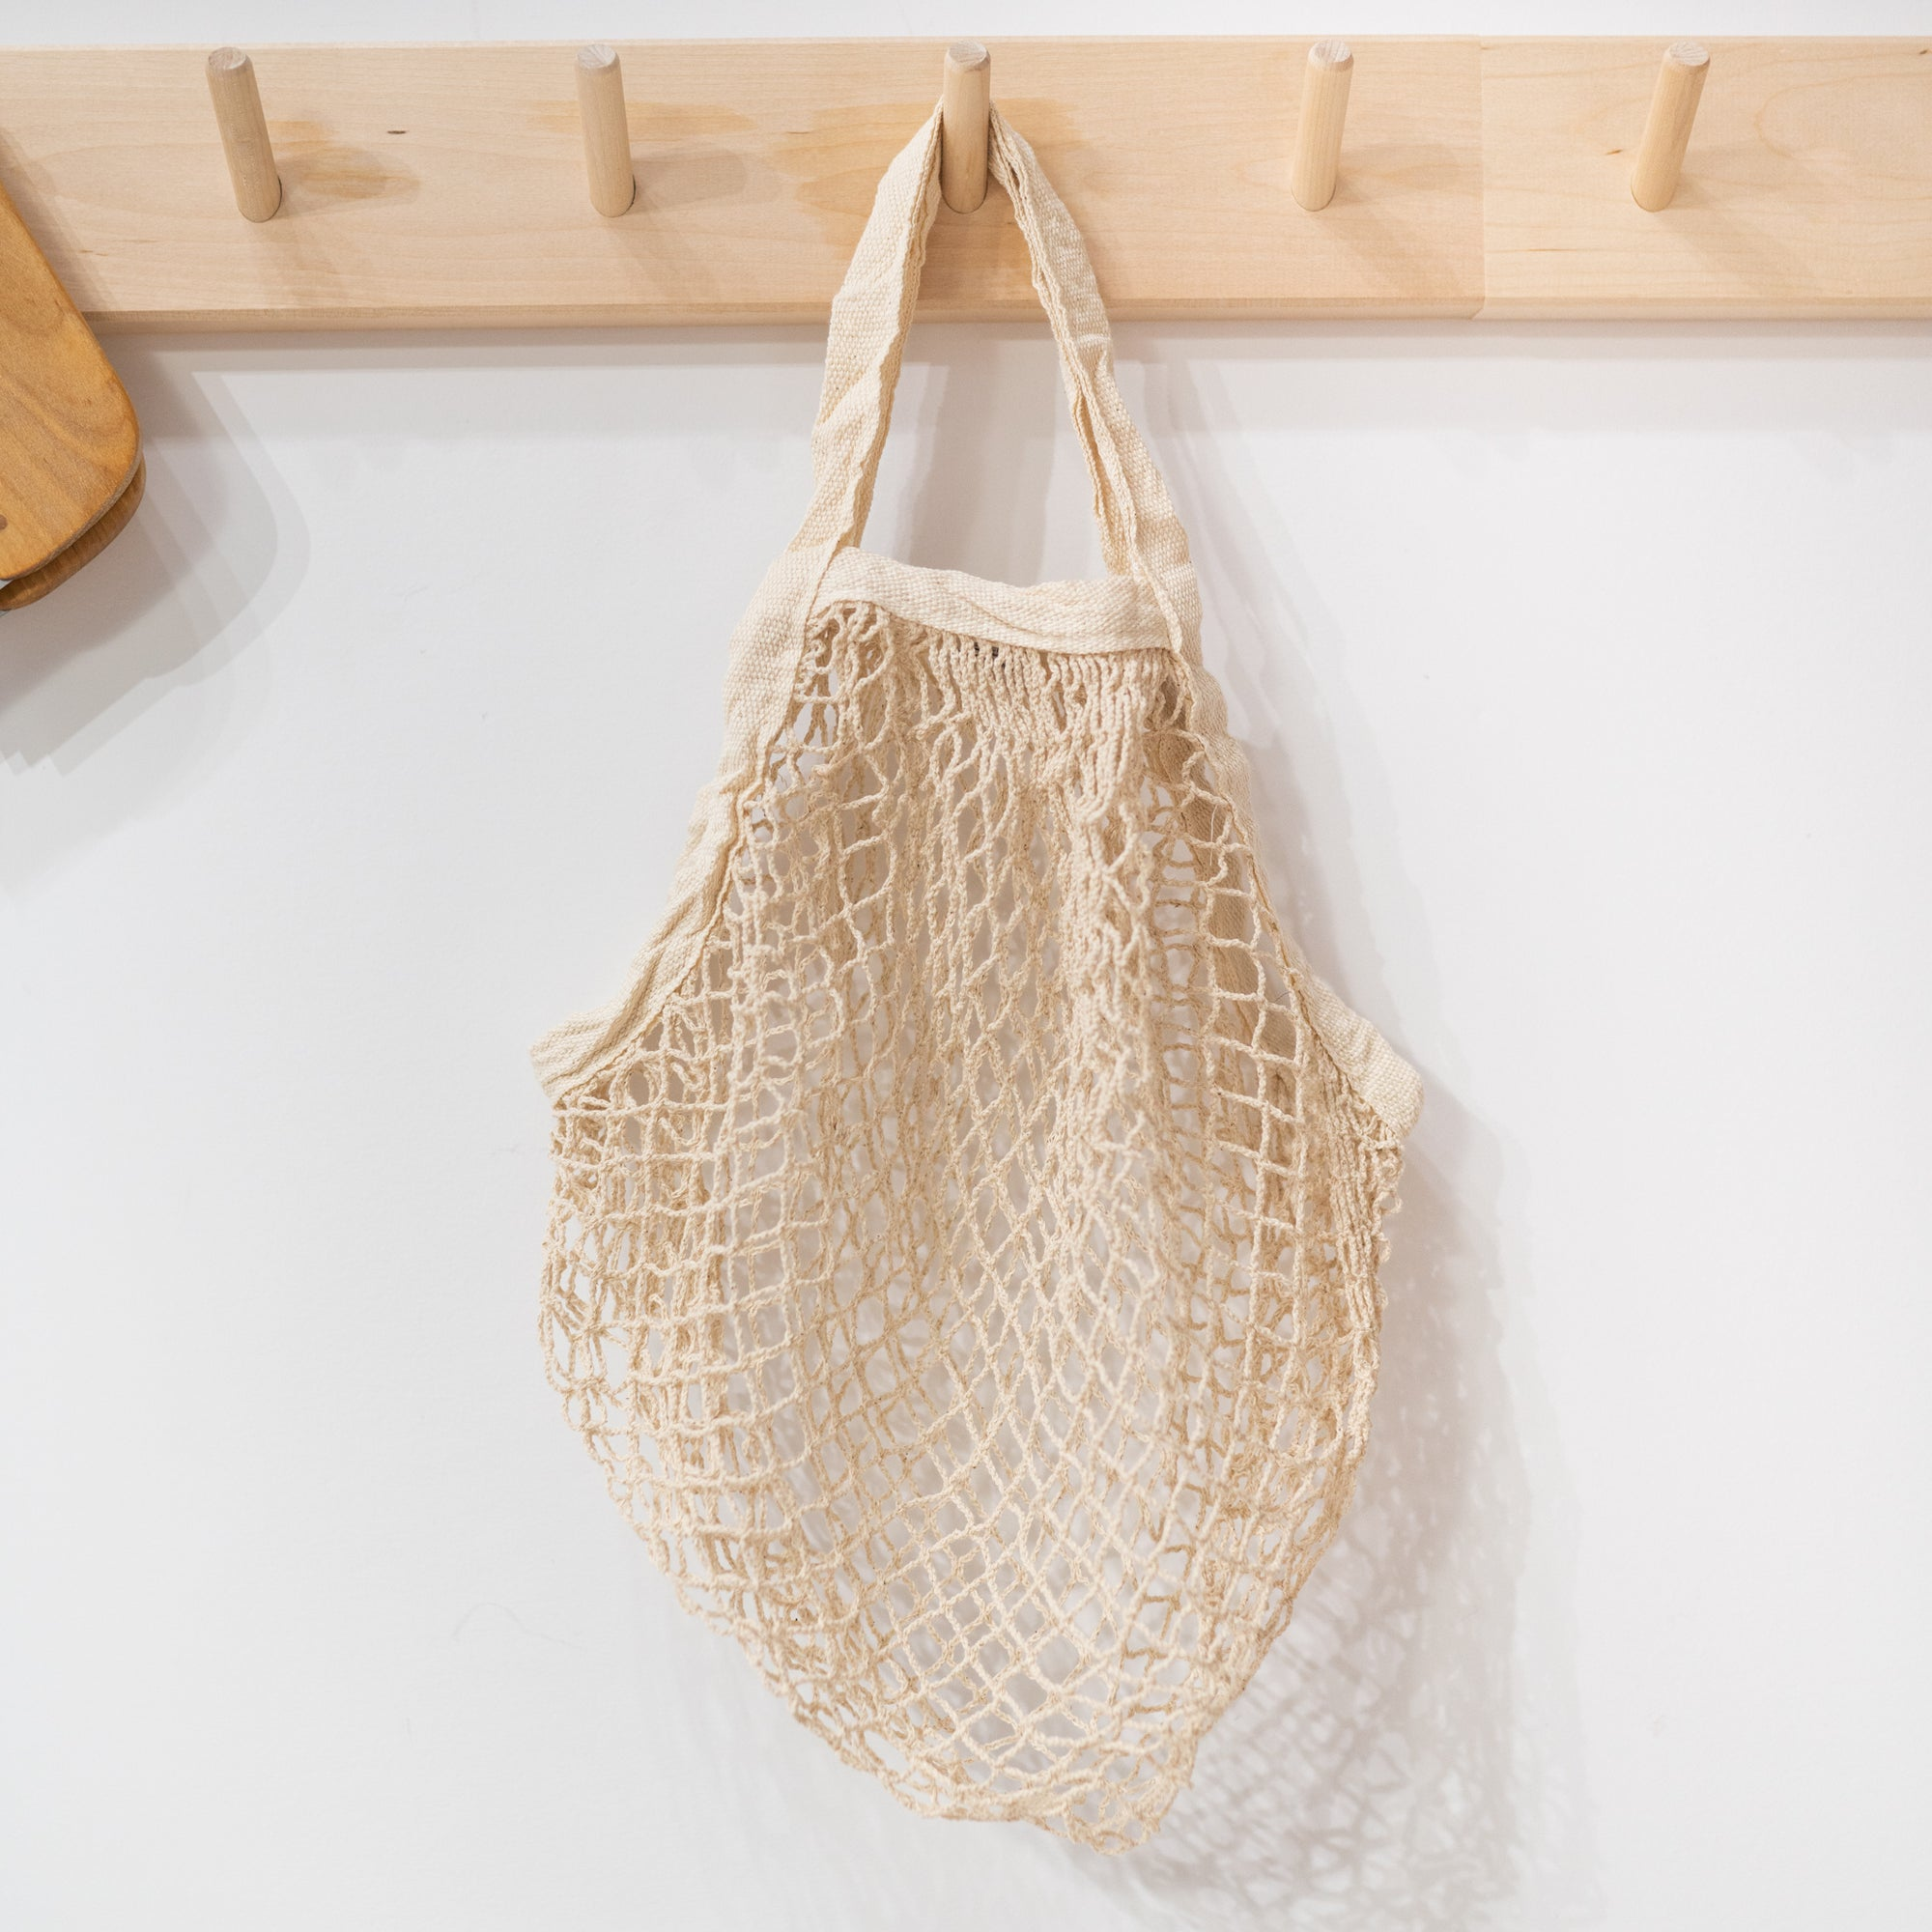 Cotton Net Shopping Bag - Rug & Weave